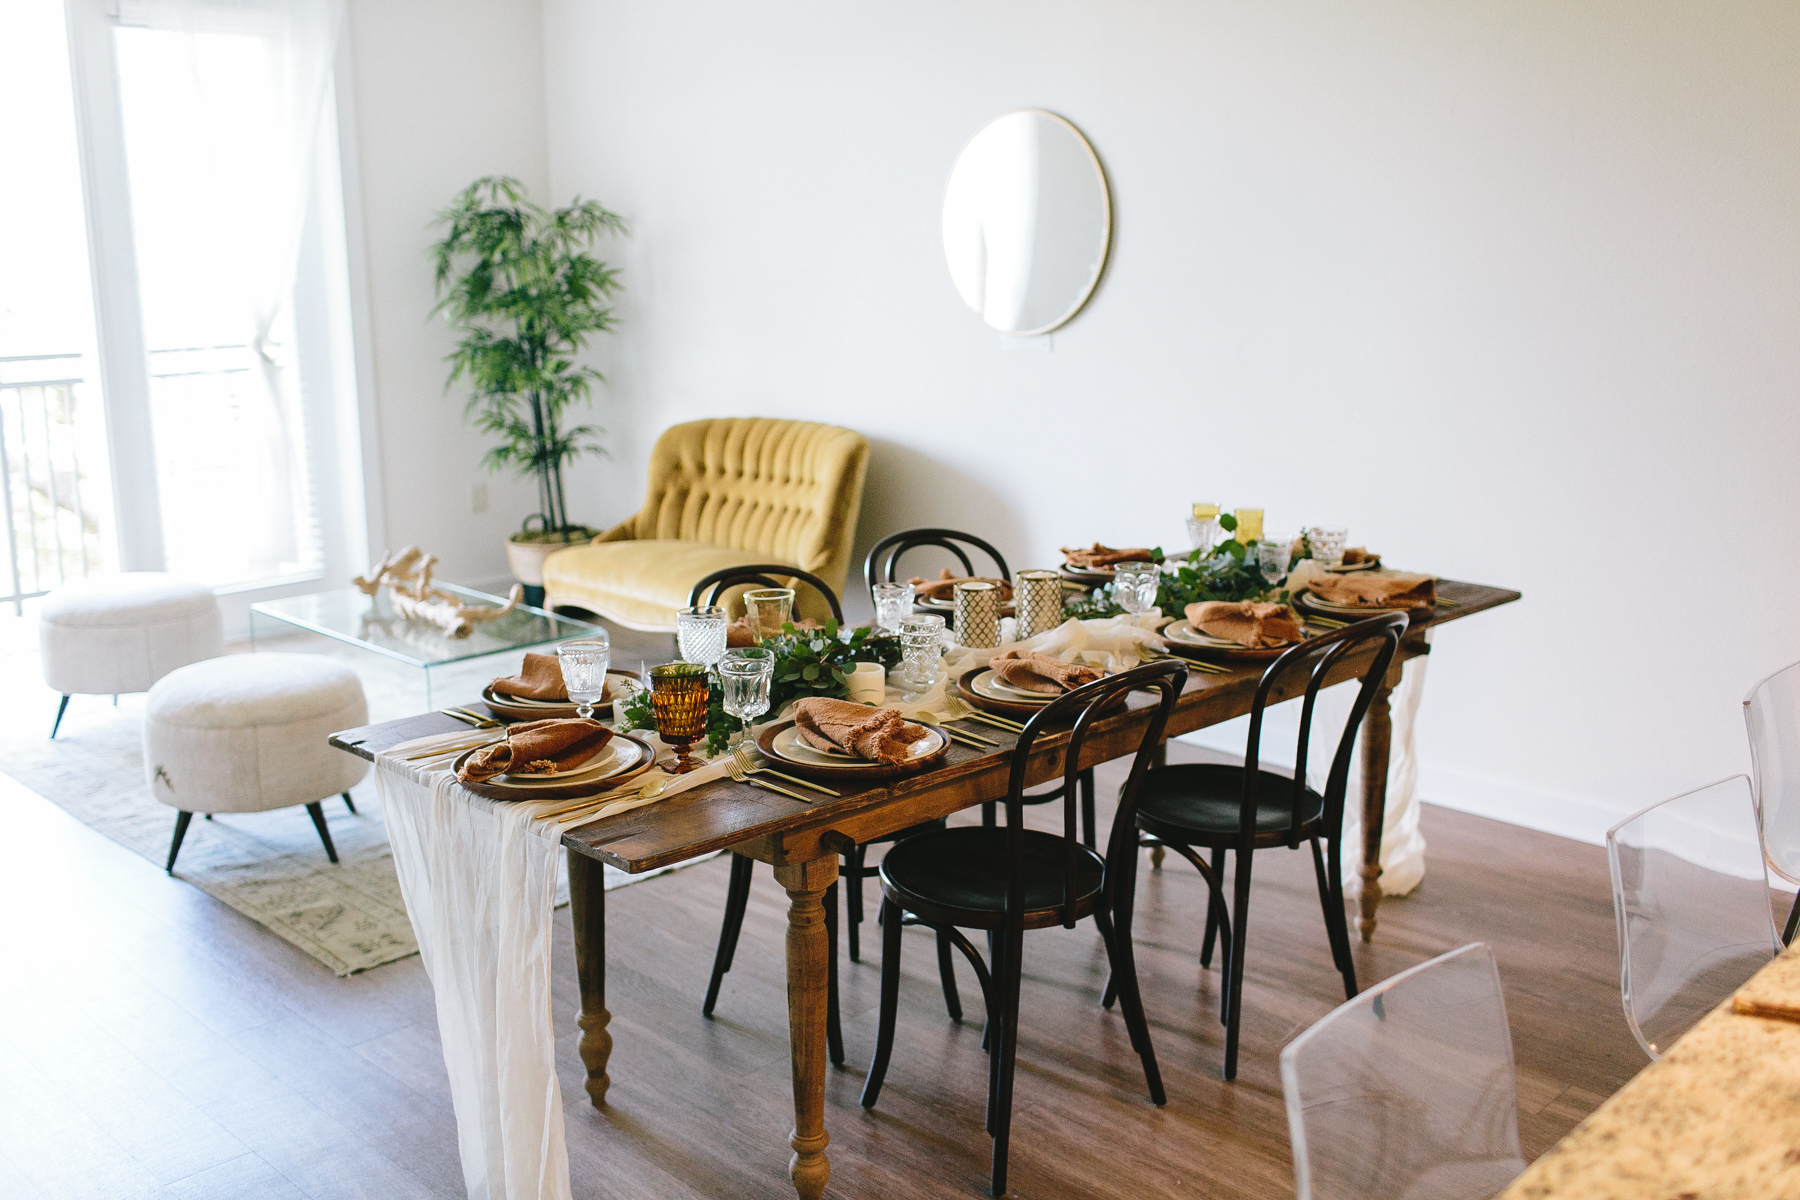 livvyland-blog-olivia-watson-zilkr-condo-loot-vintage-friendsgiving-tablescape-table-setup-idea-7